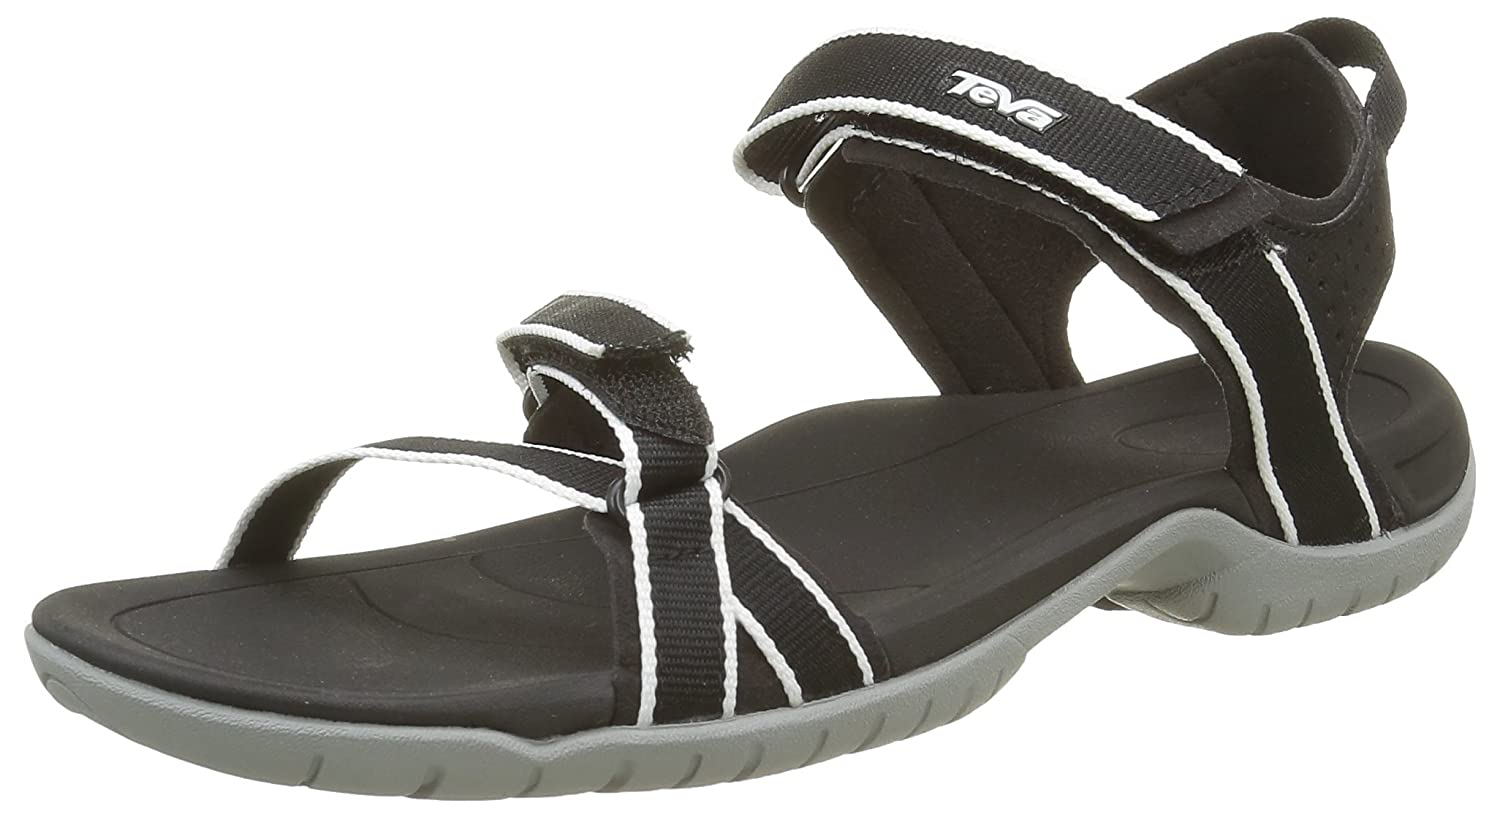 Black Grey Teva Women's Verra Sandal